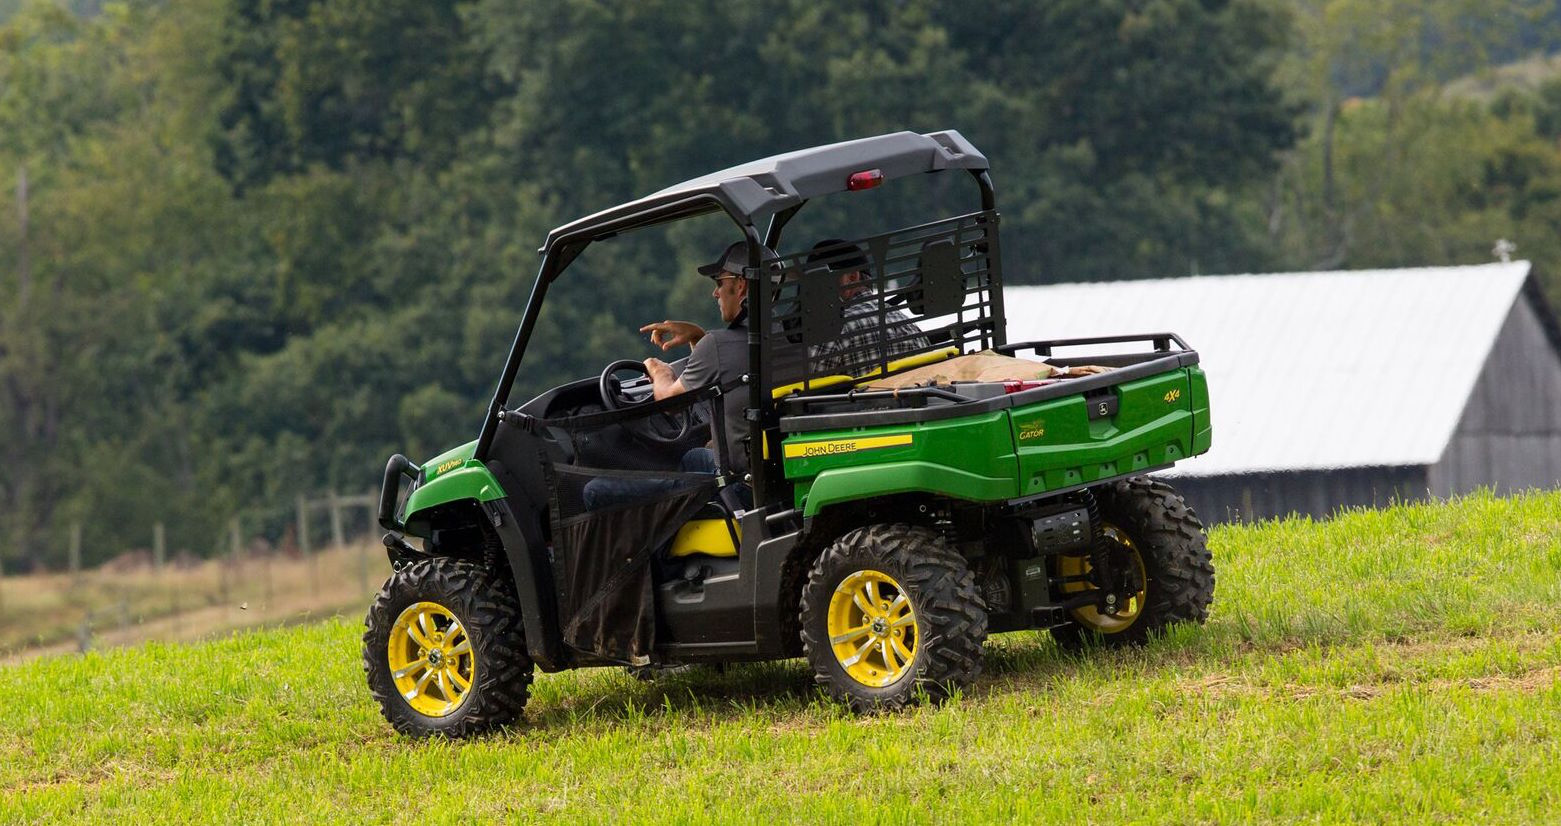 John Deere Side By Side >> John Deere Gator Utv Updates Total Landscape Care